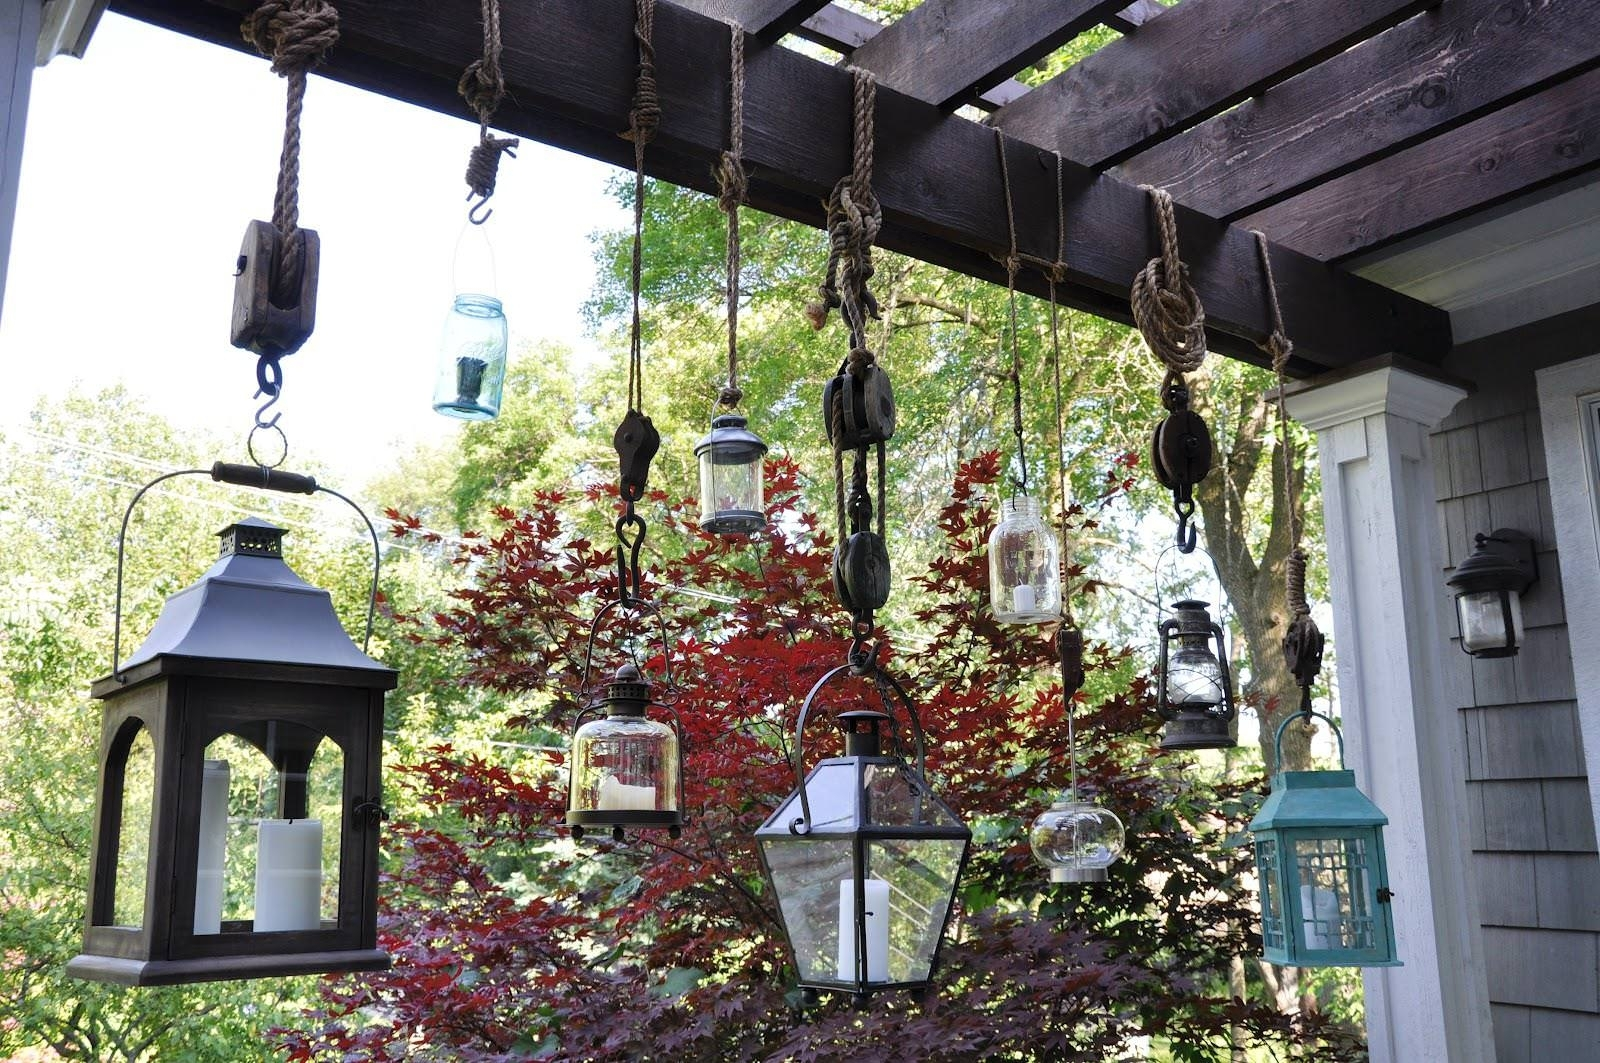 Emejing Hanging Lanterns Indoor Gallery – Decoration Design Ideas Throughout Outdoor Hanging Lanterns Candles (View 12 of 15)